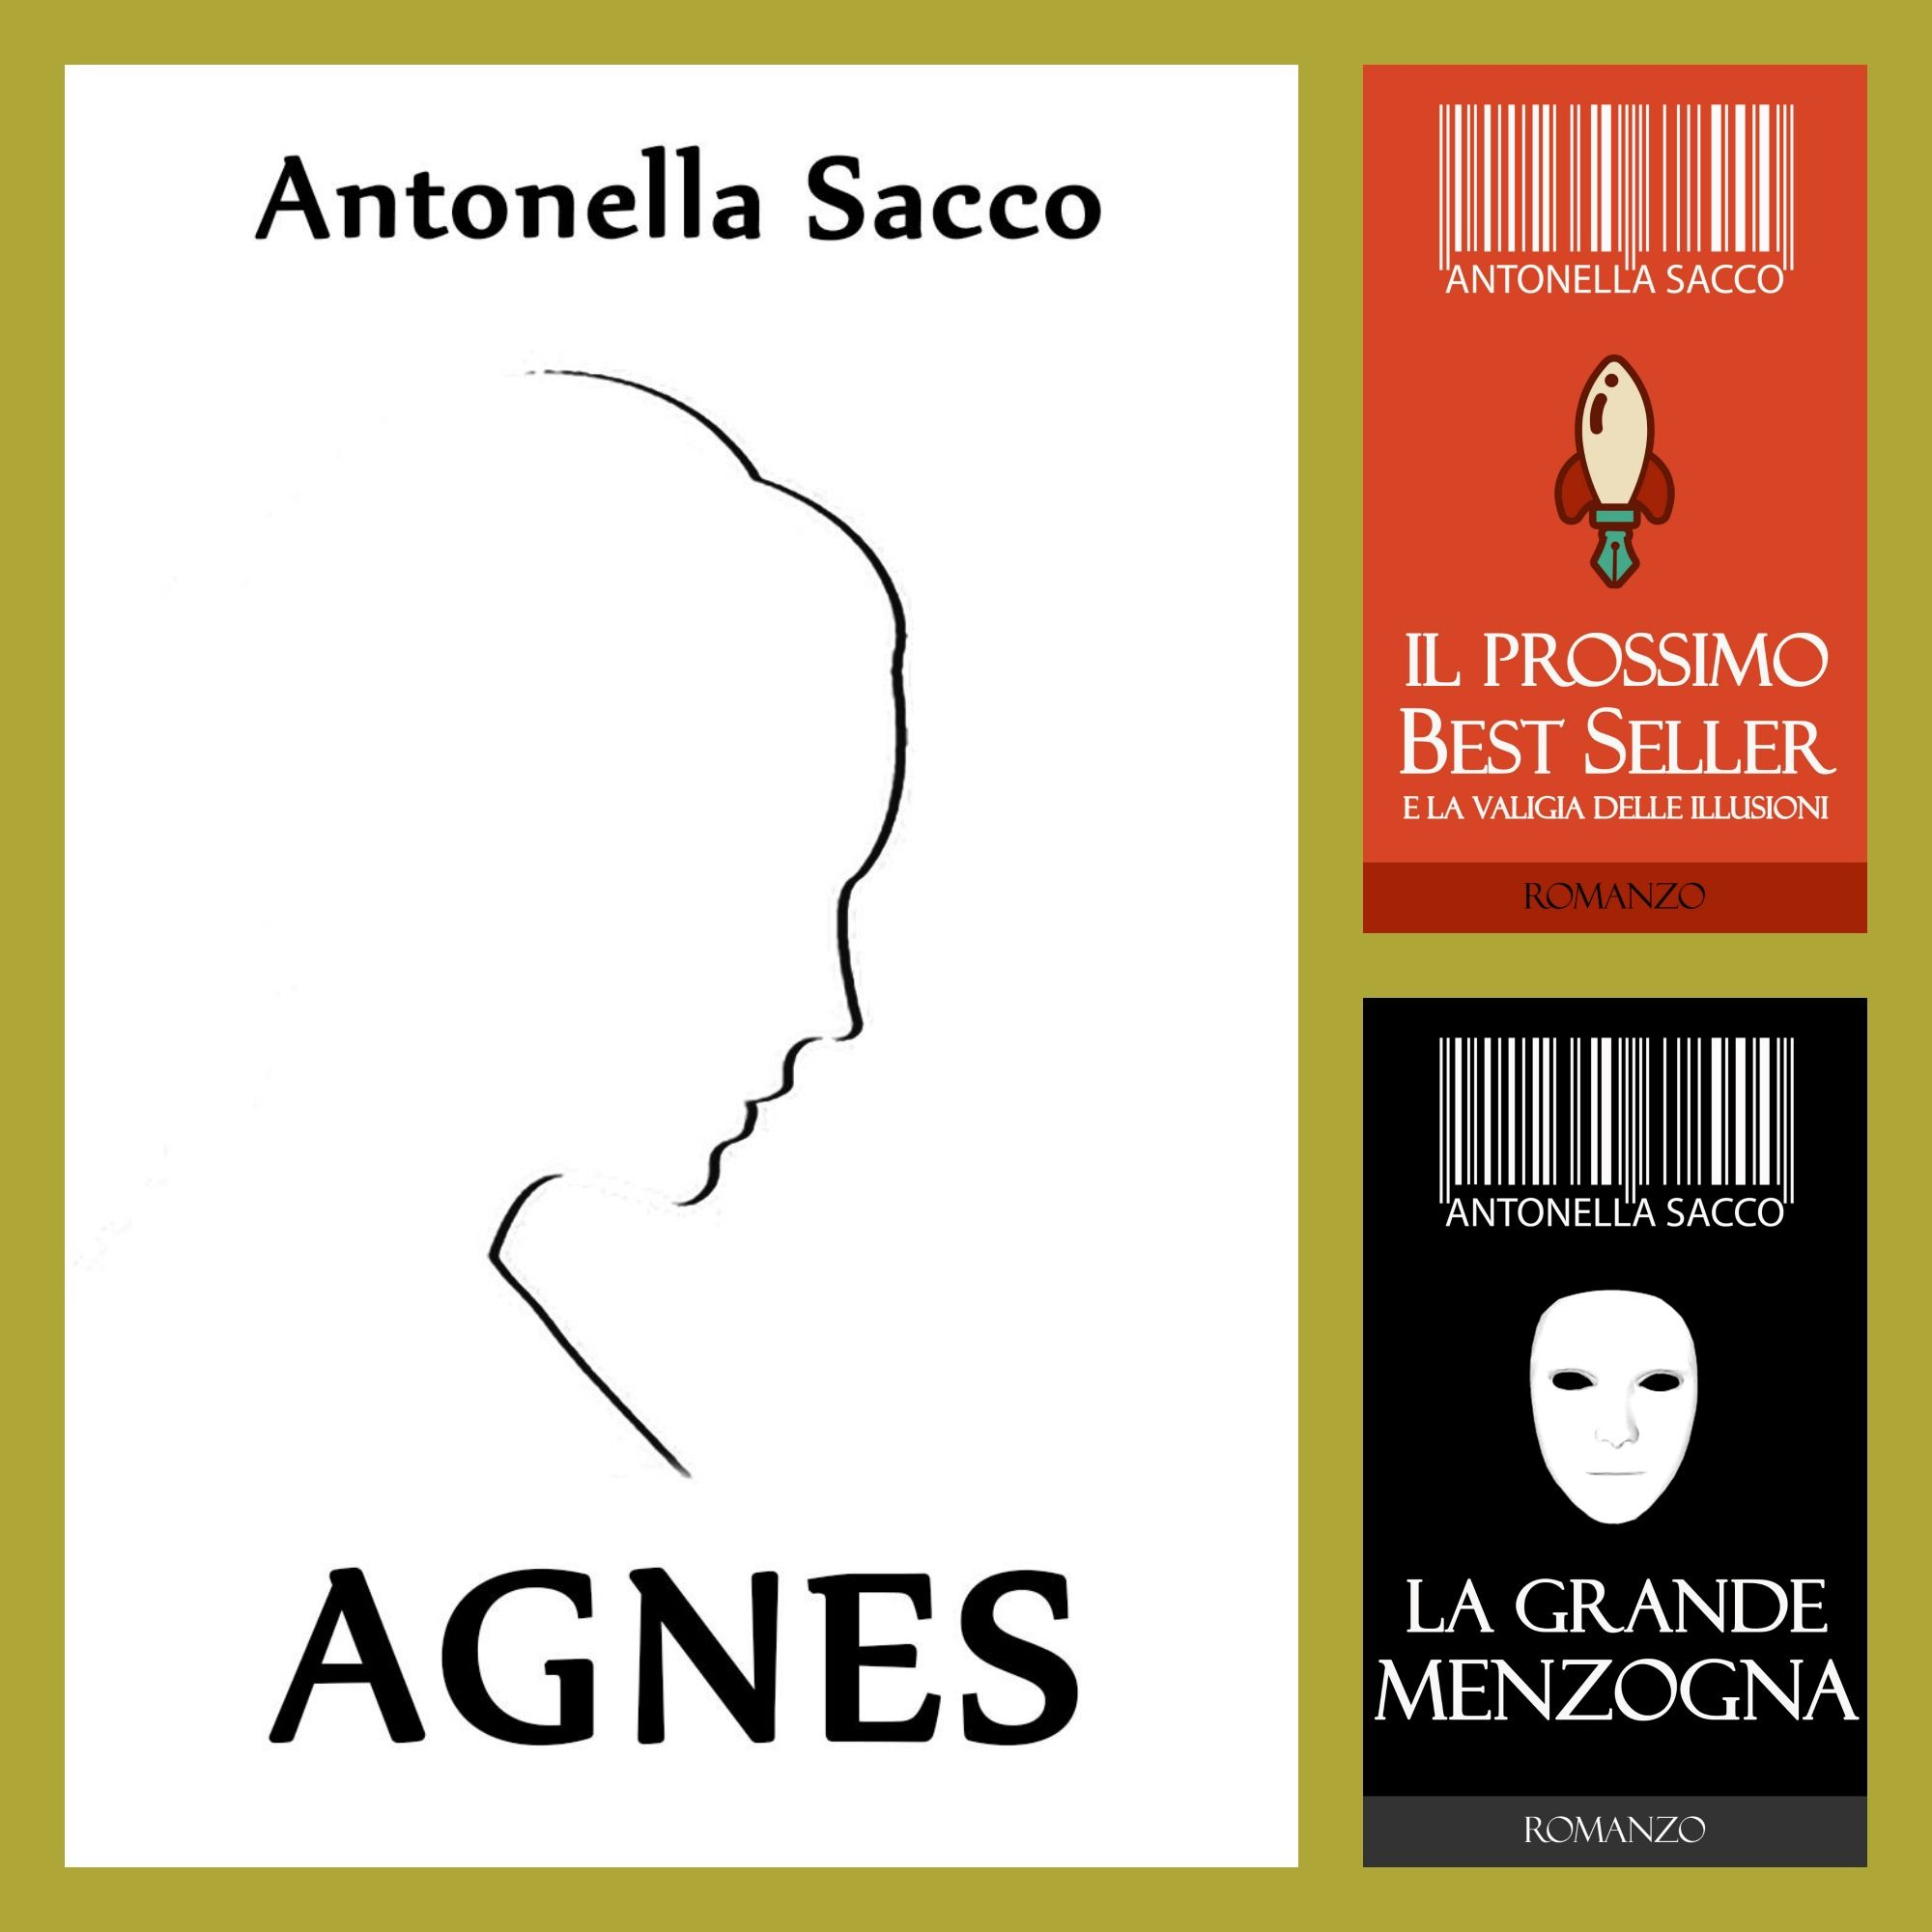 i miei #romanzi in #ebook #kindleunlimited  http://www.amazon.it/s/ref=dp_byline_sr_ebooks_1?ie=UTF8&text=Antonella+Sacco&search-alias=digital-text&field-author=Antonella+Sacco&sort=relevancerank